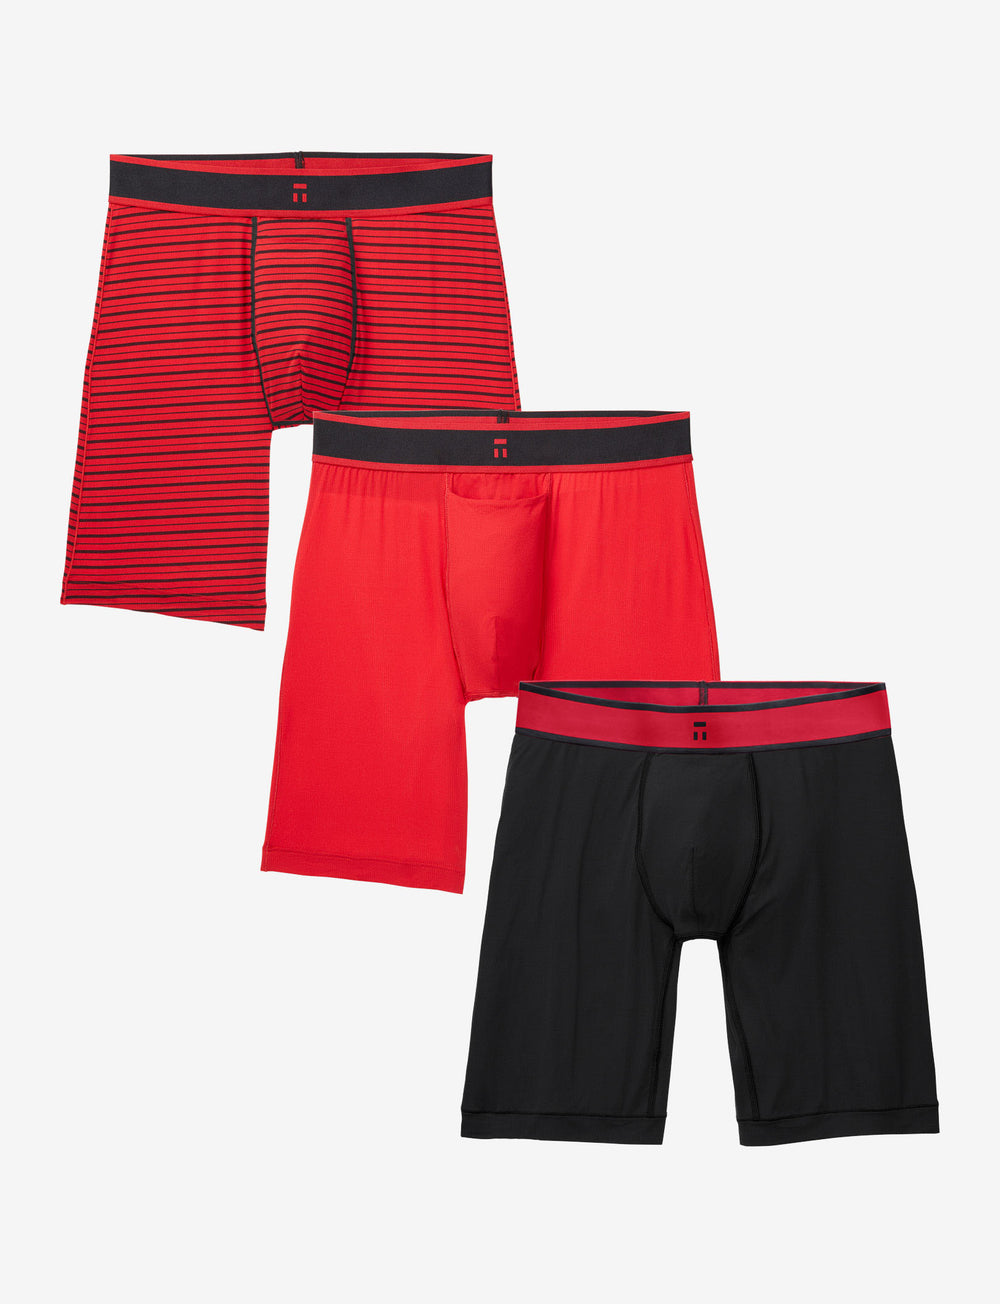 Air Boxer Brief Holiday 3 Pack Details Image